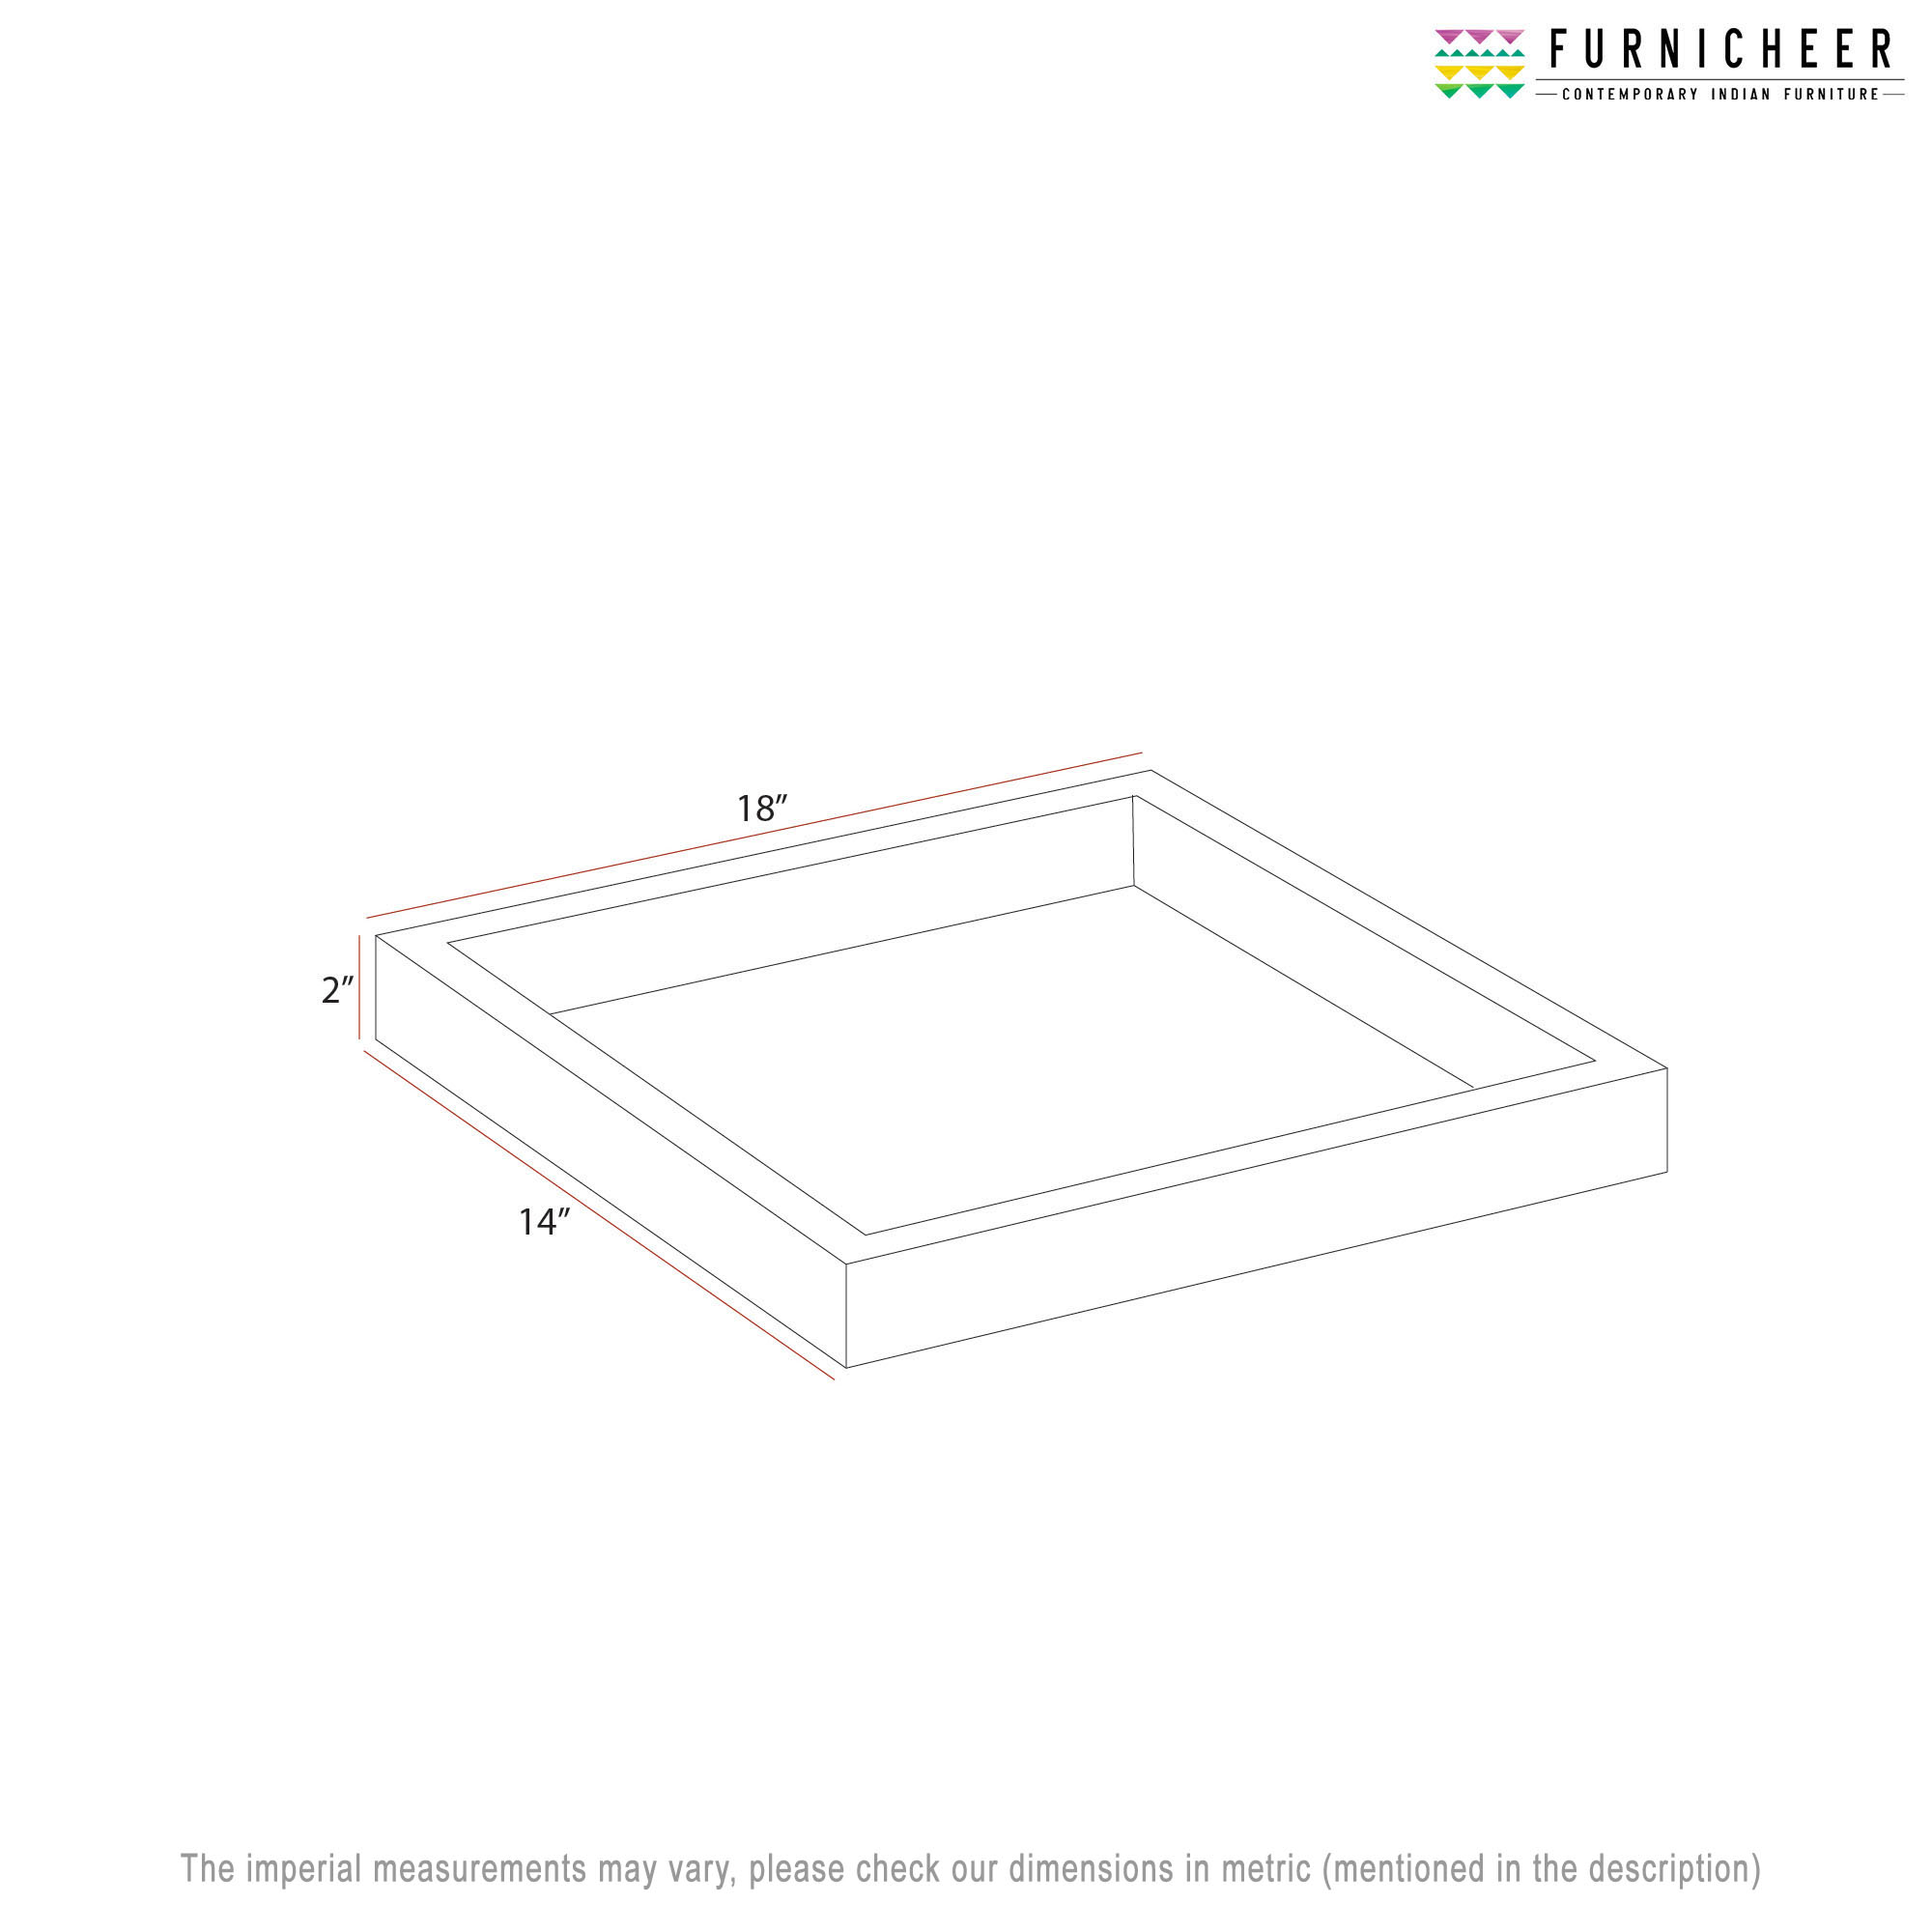 SERVING TRAY 18 X 14